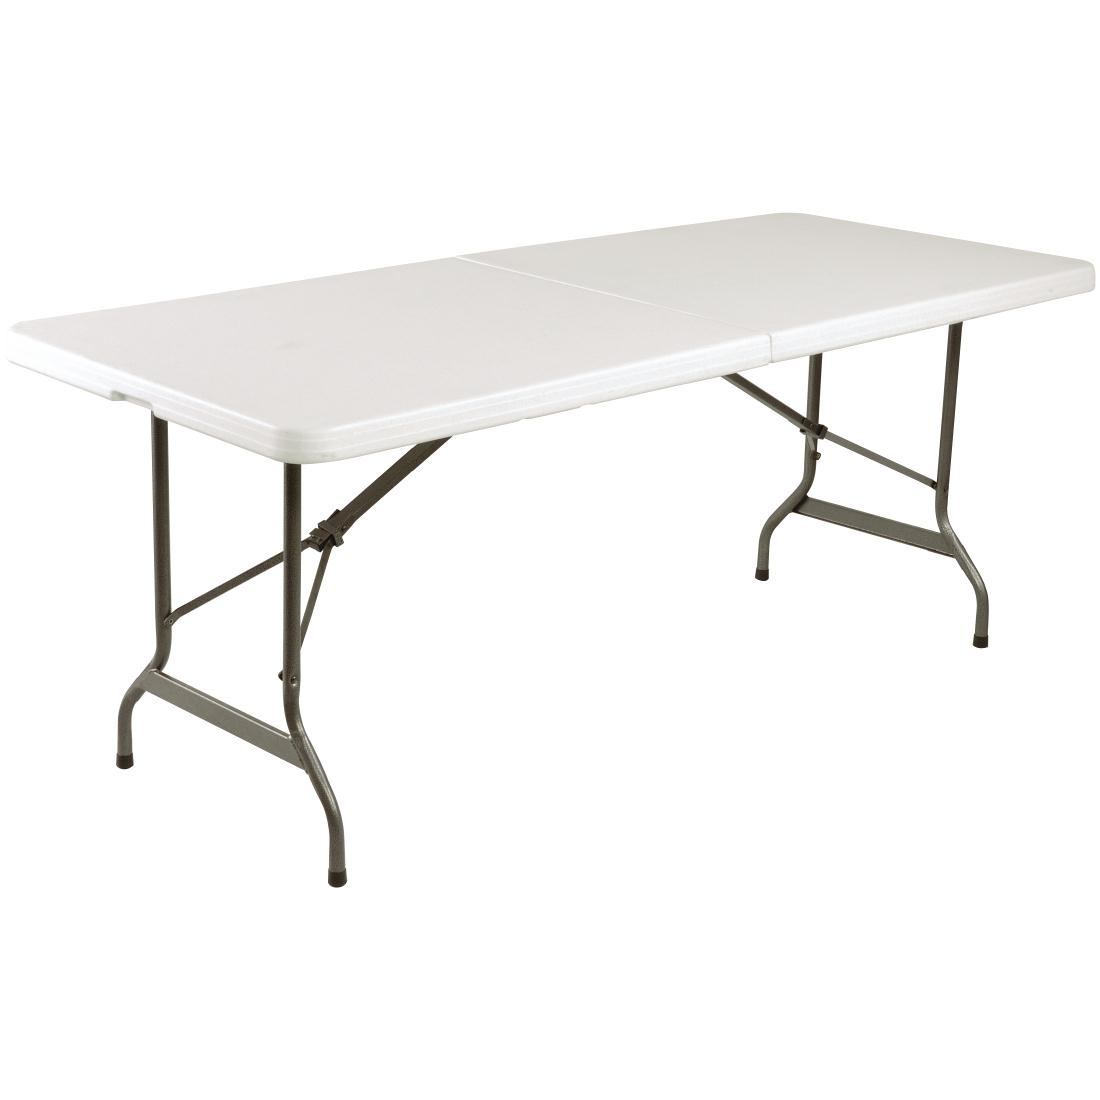 Bolero Centre Folding Utility Table 6ft White